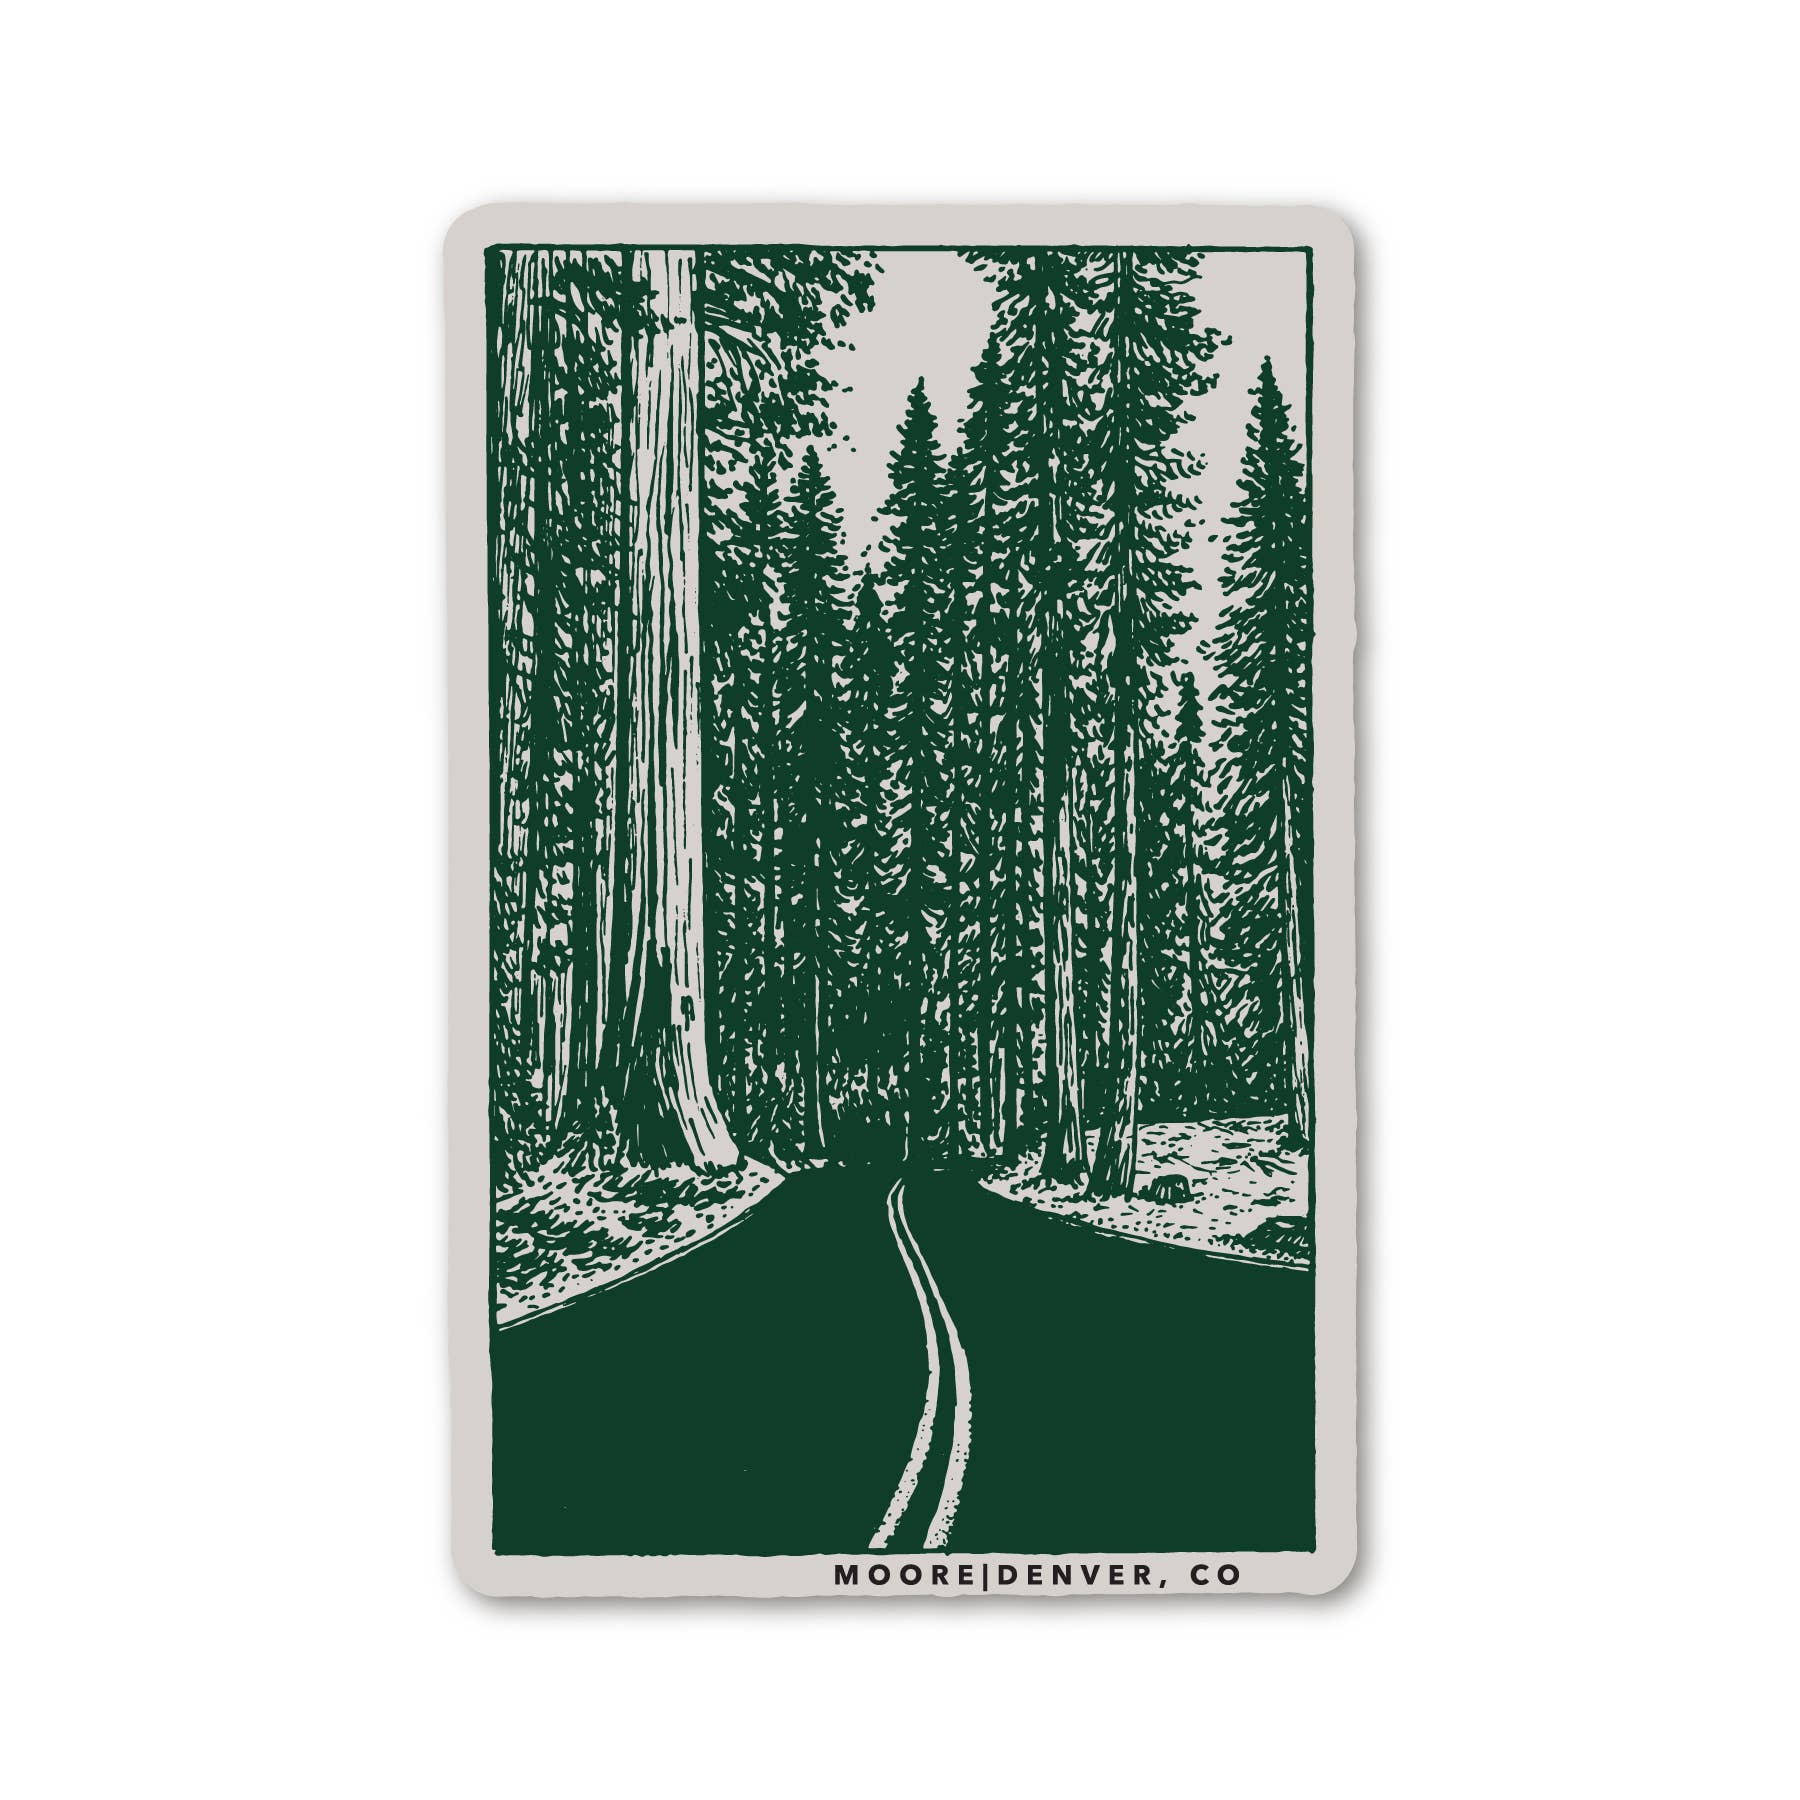 Redwoods Sticker - The Lake and Company